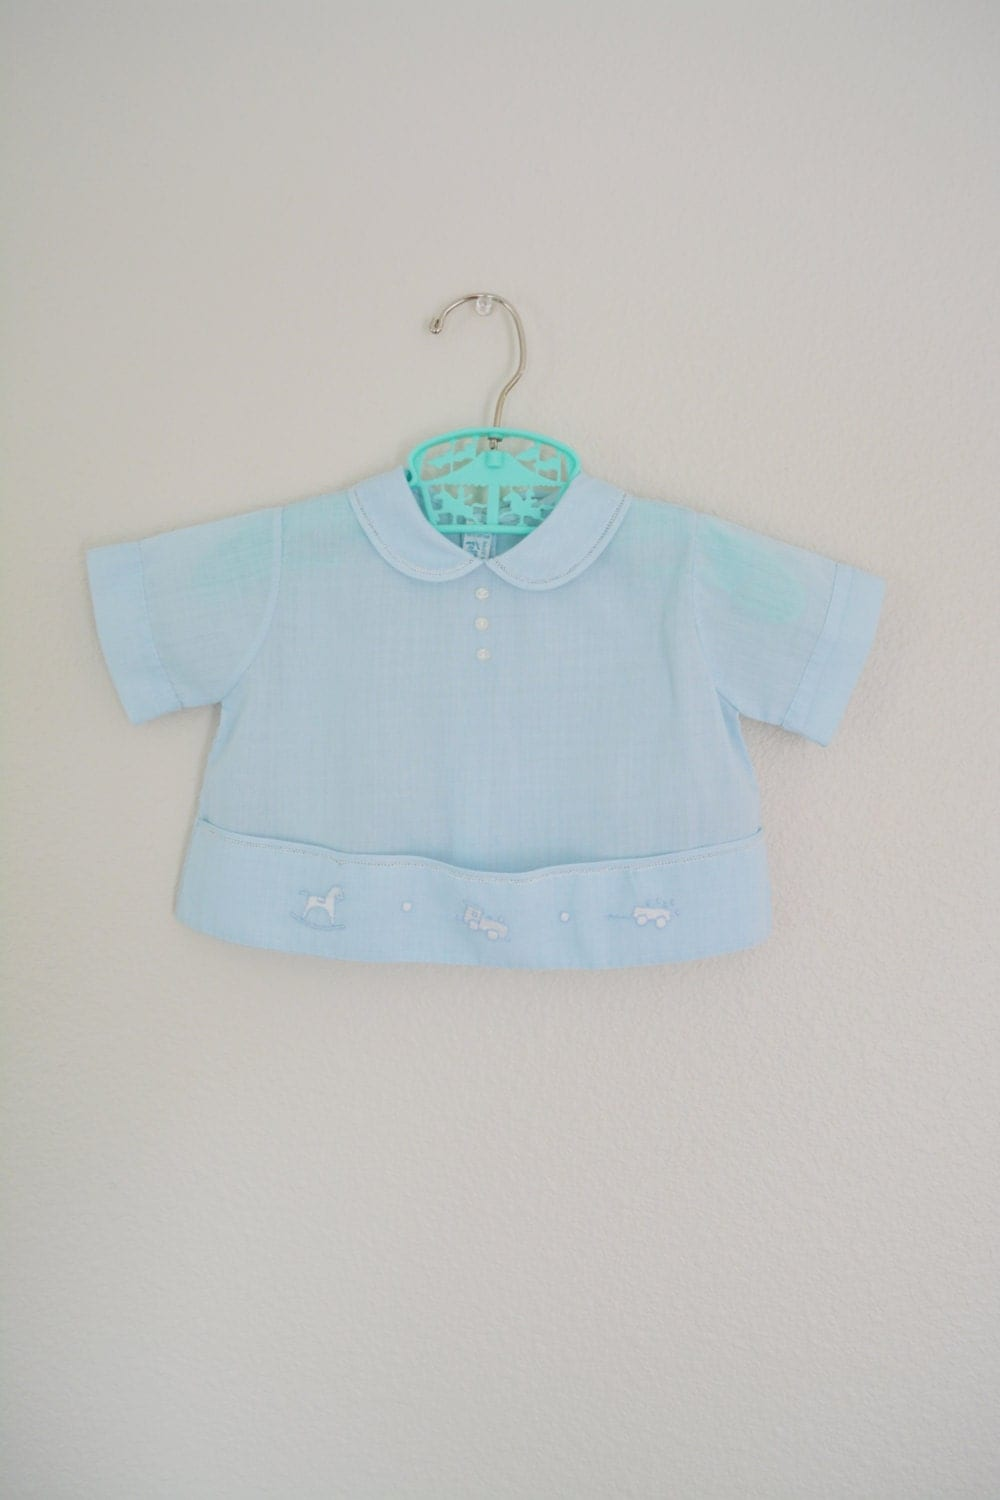 Handmade Retro Baby Clothes by Simplicitretro  |1950 Baby Stuff